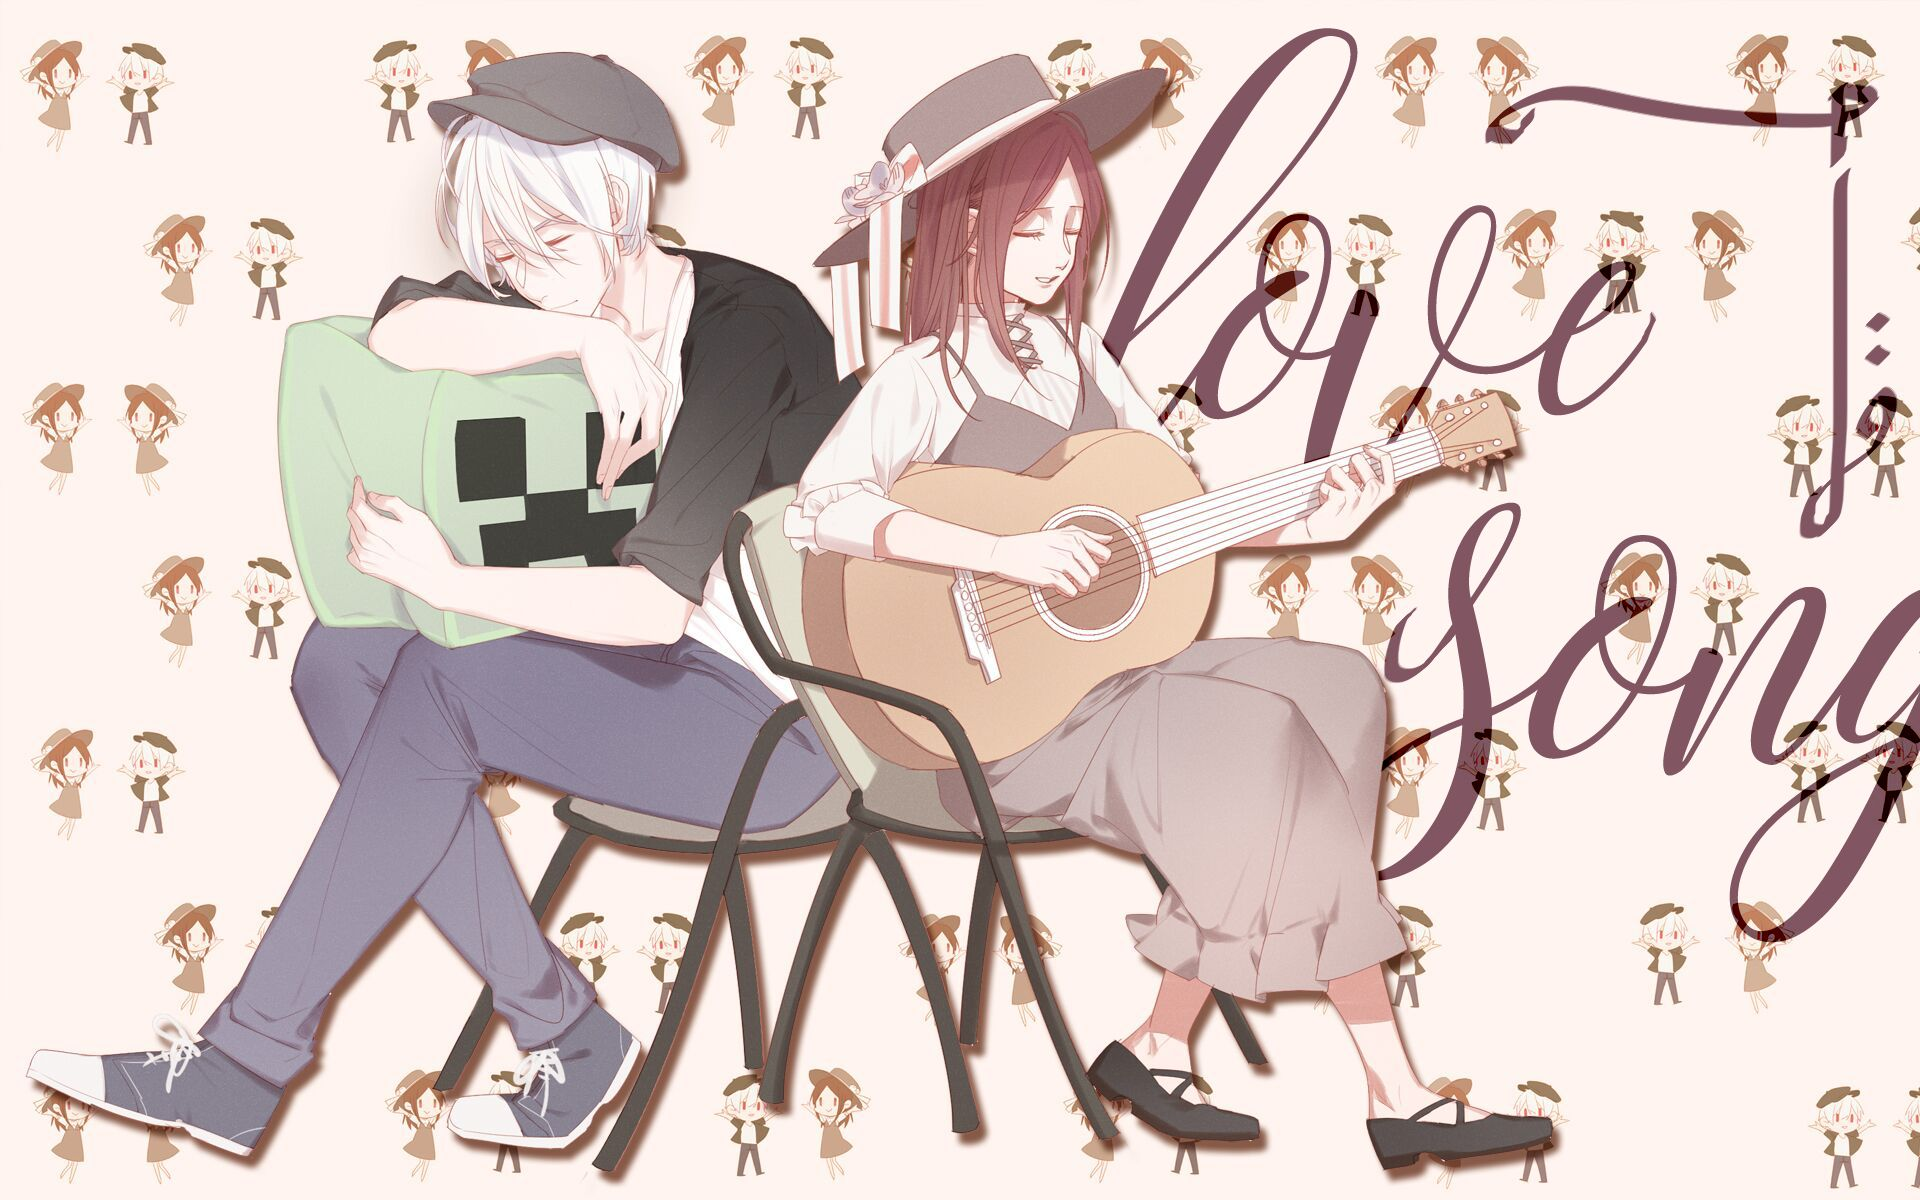 bbbb乃_【暖阳】love song hb to abbbb君